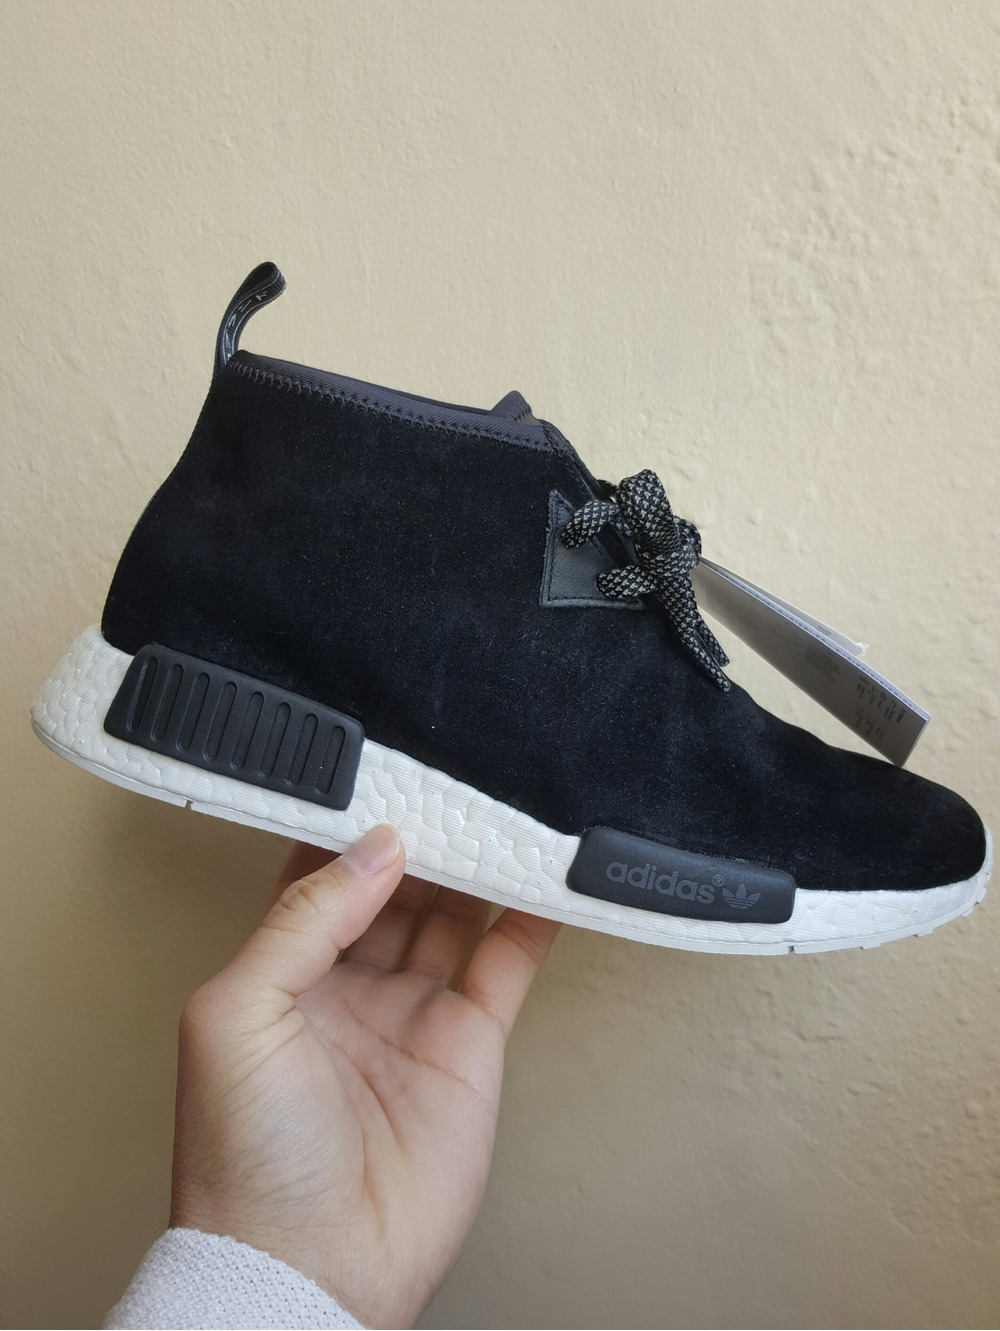 adidas nmd c1 trail shoes The Alteration Rooms NMD_C1 Trail